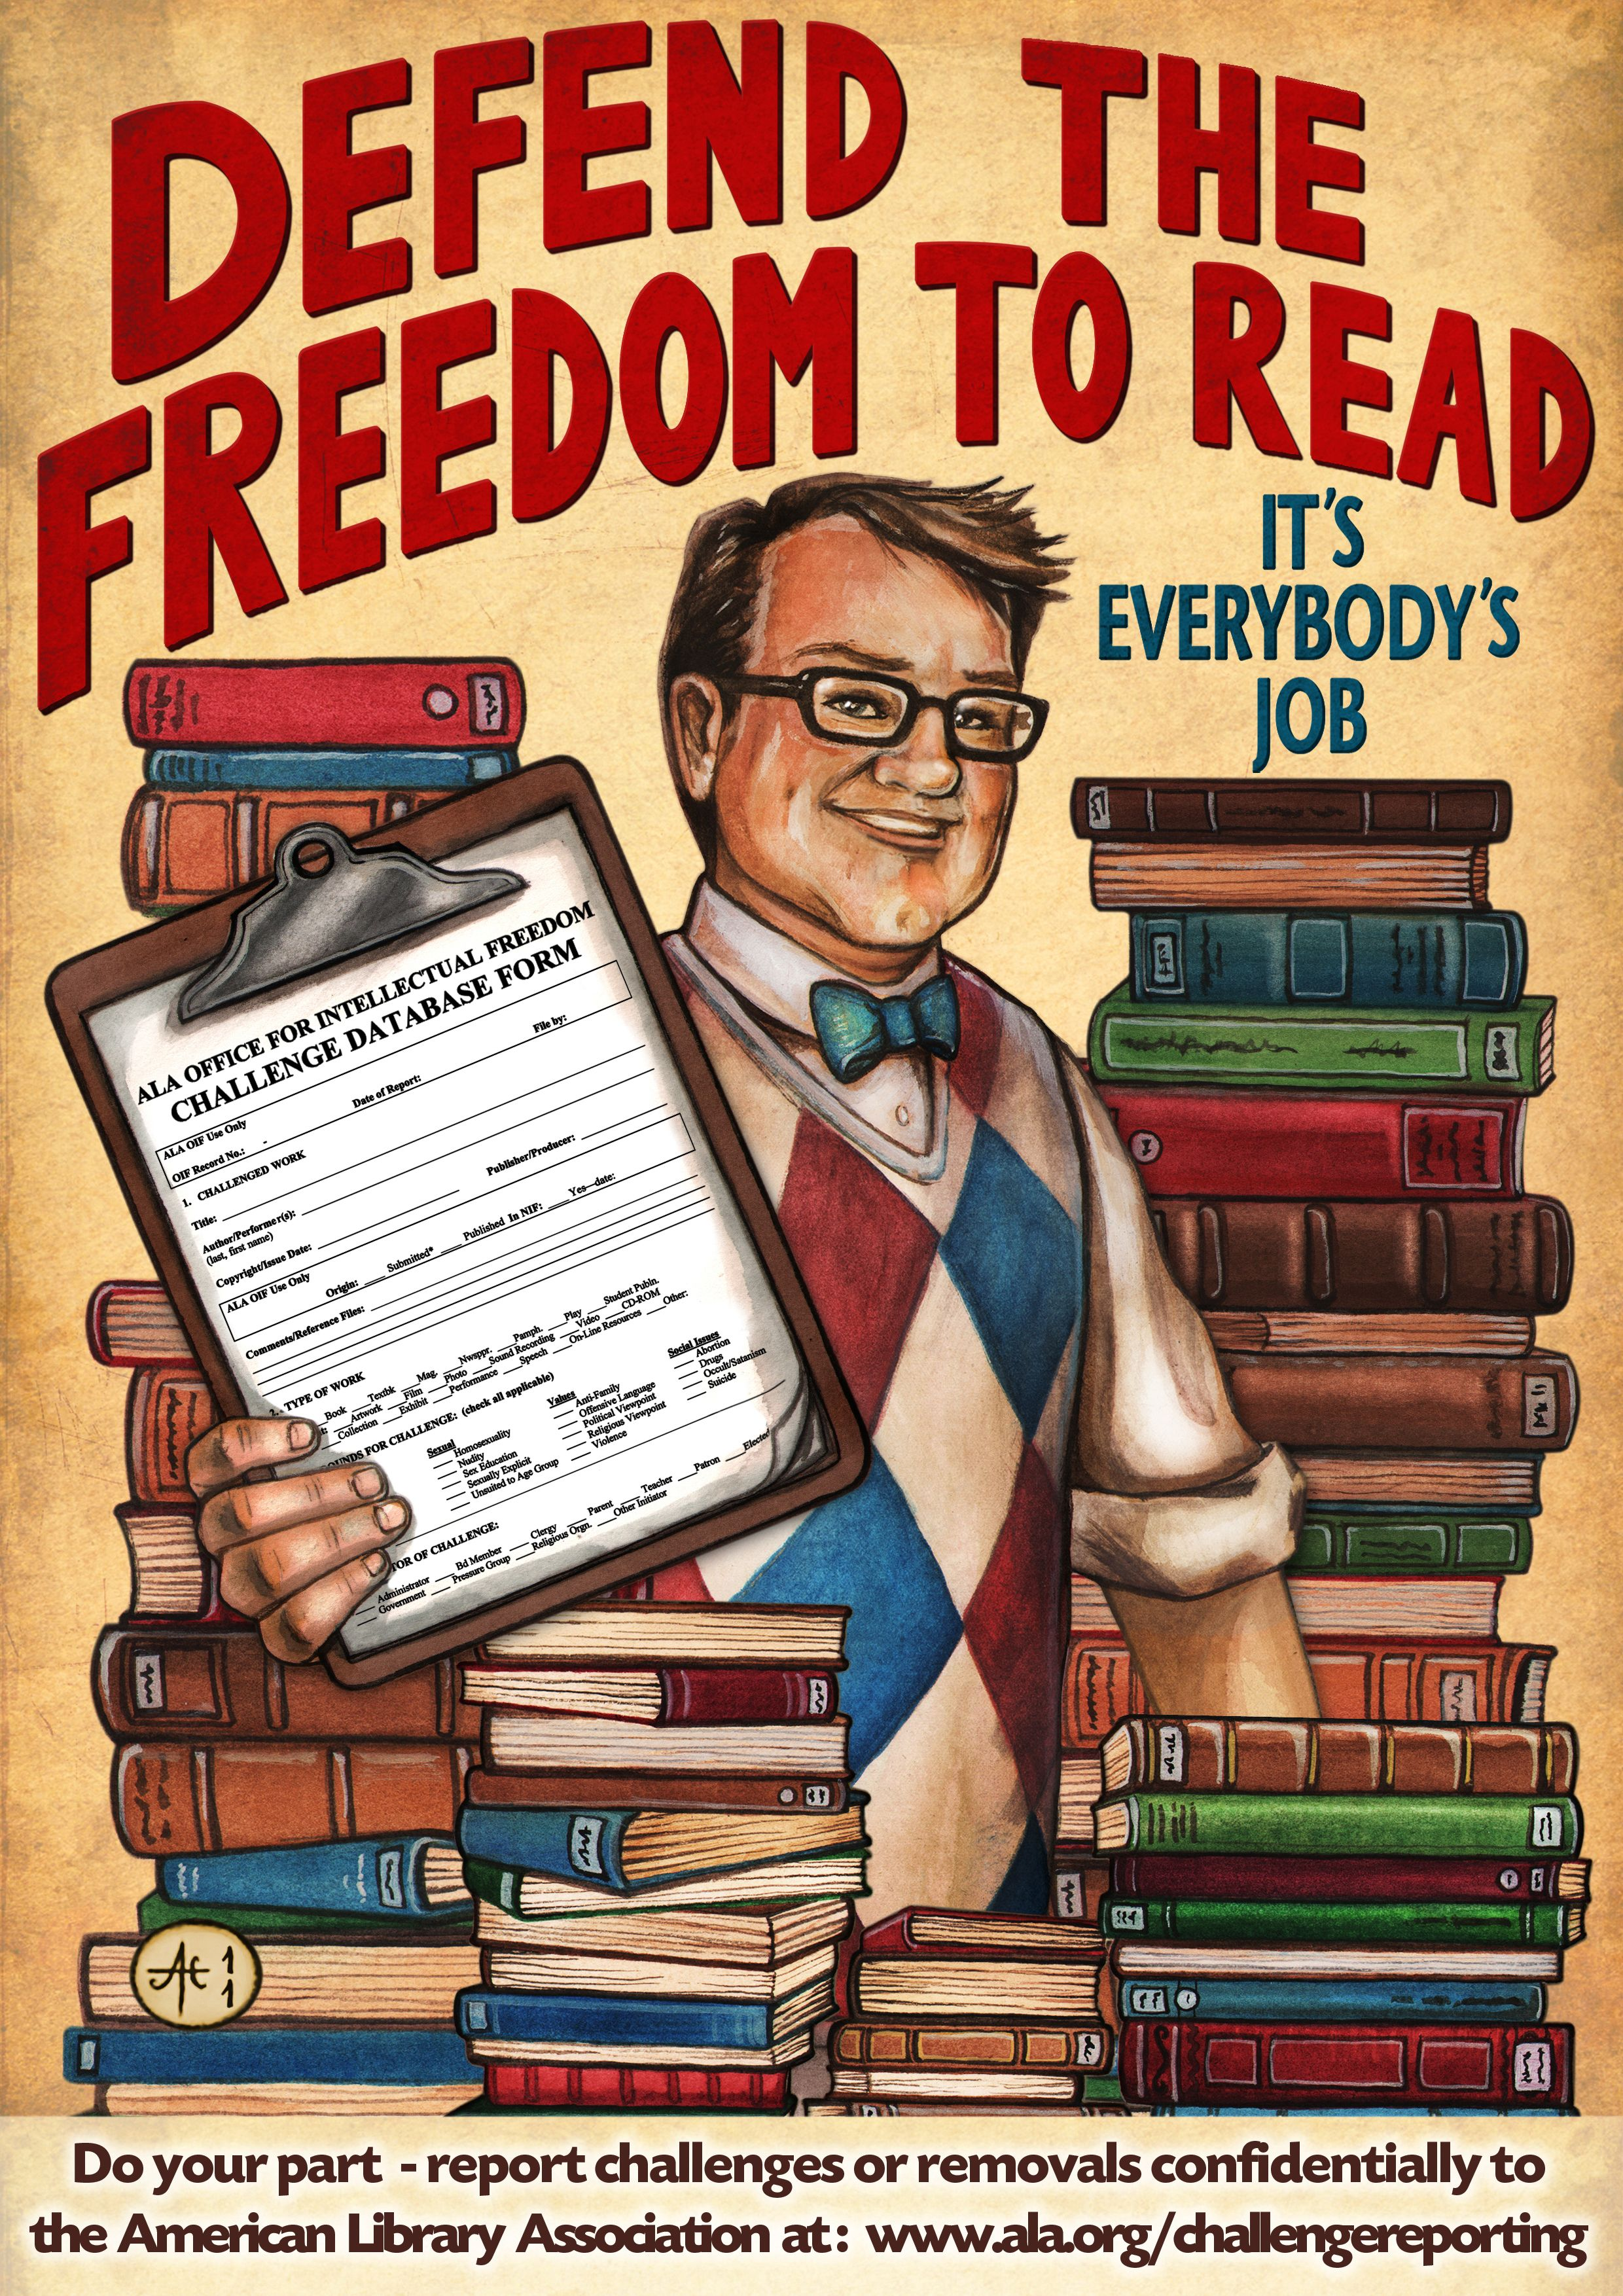 An interesting adaptation of Banned Books Week from ALA's OIF.